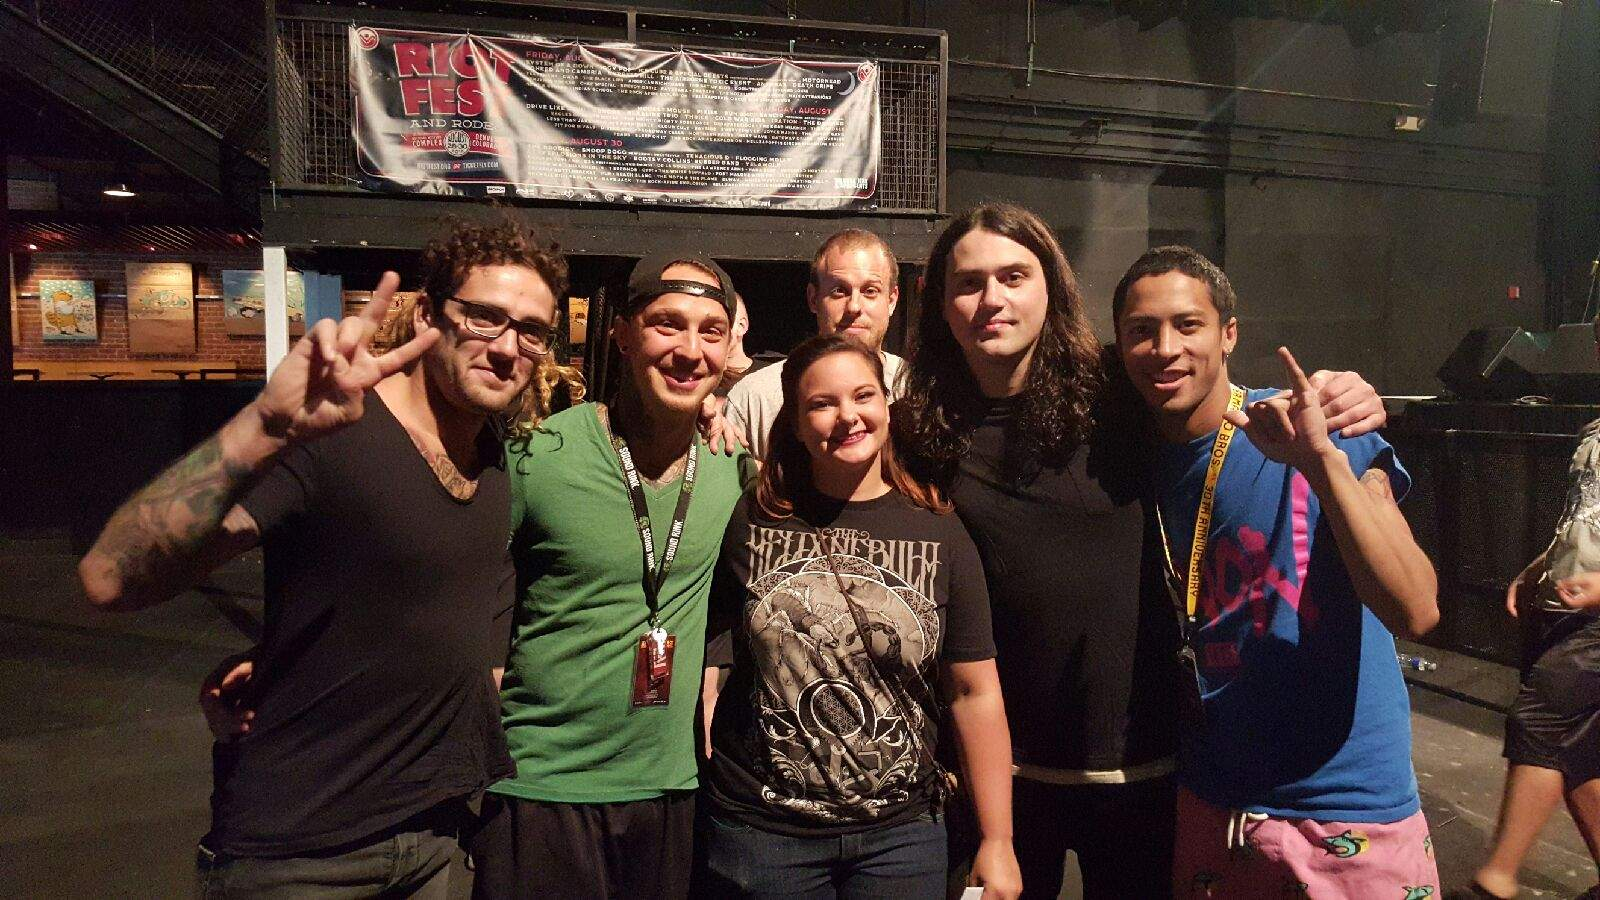 Meeting Born Of Osiris in Denver, CO.